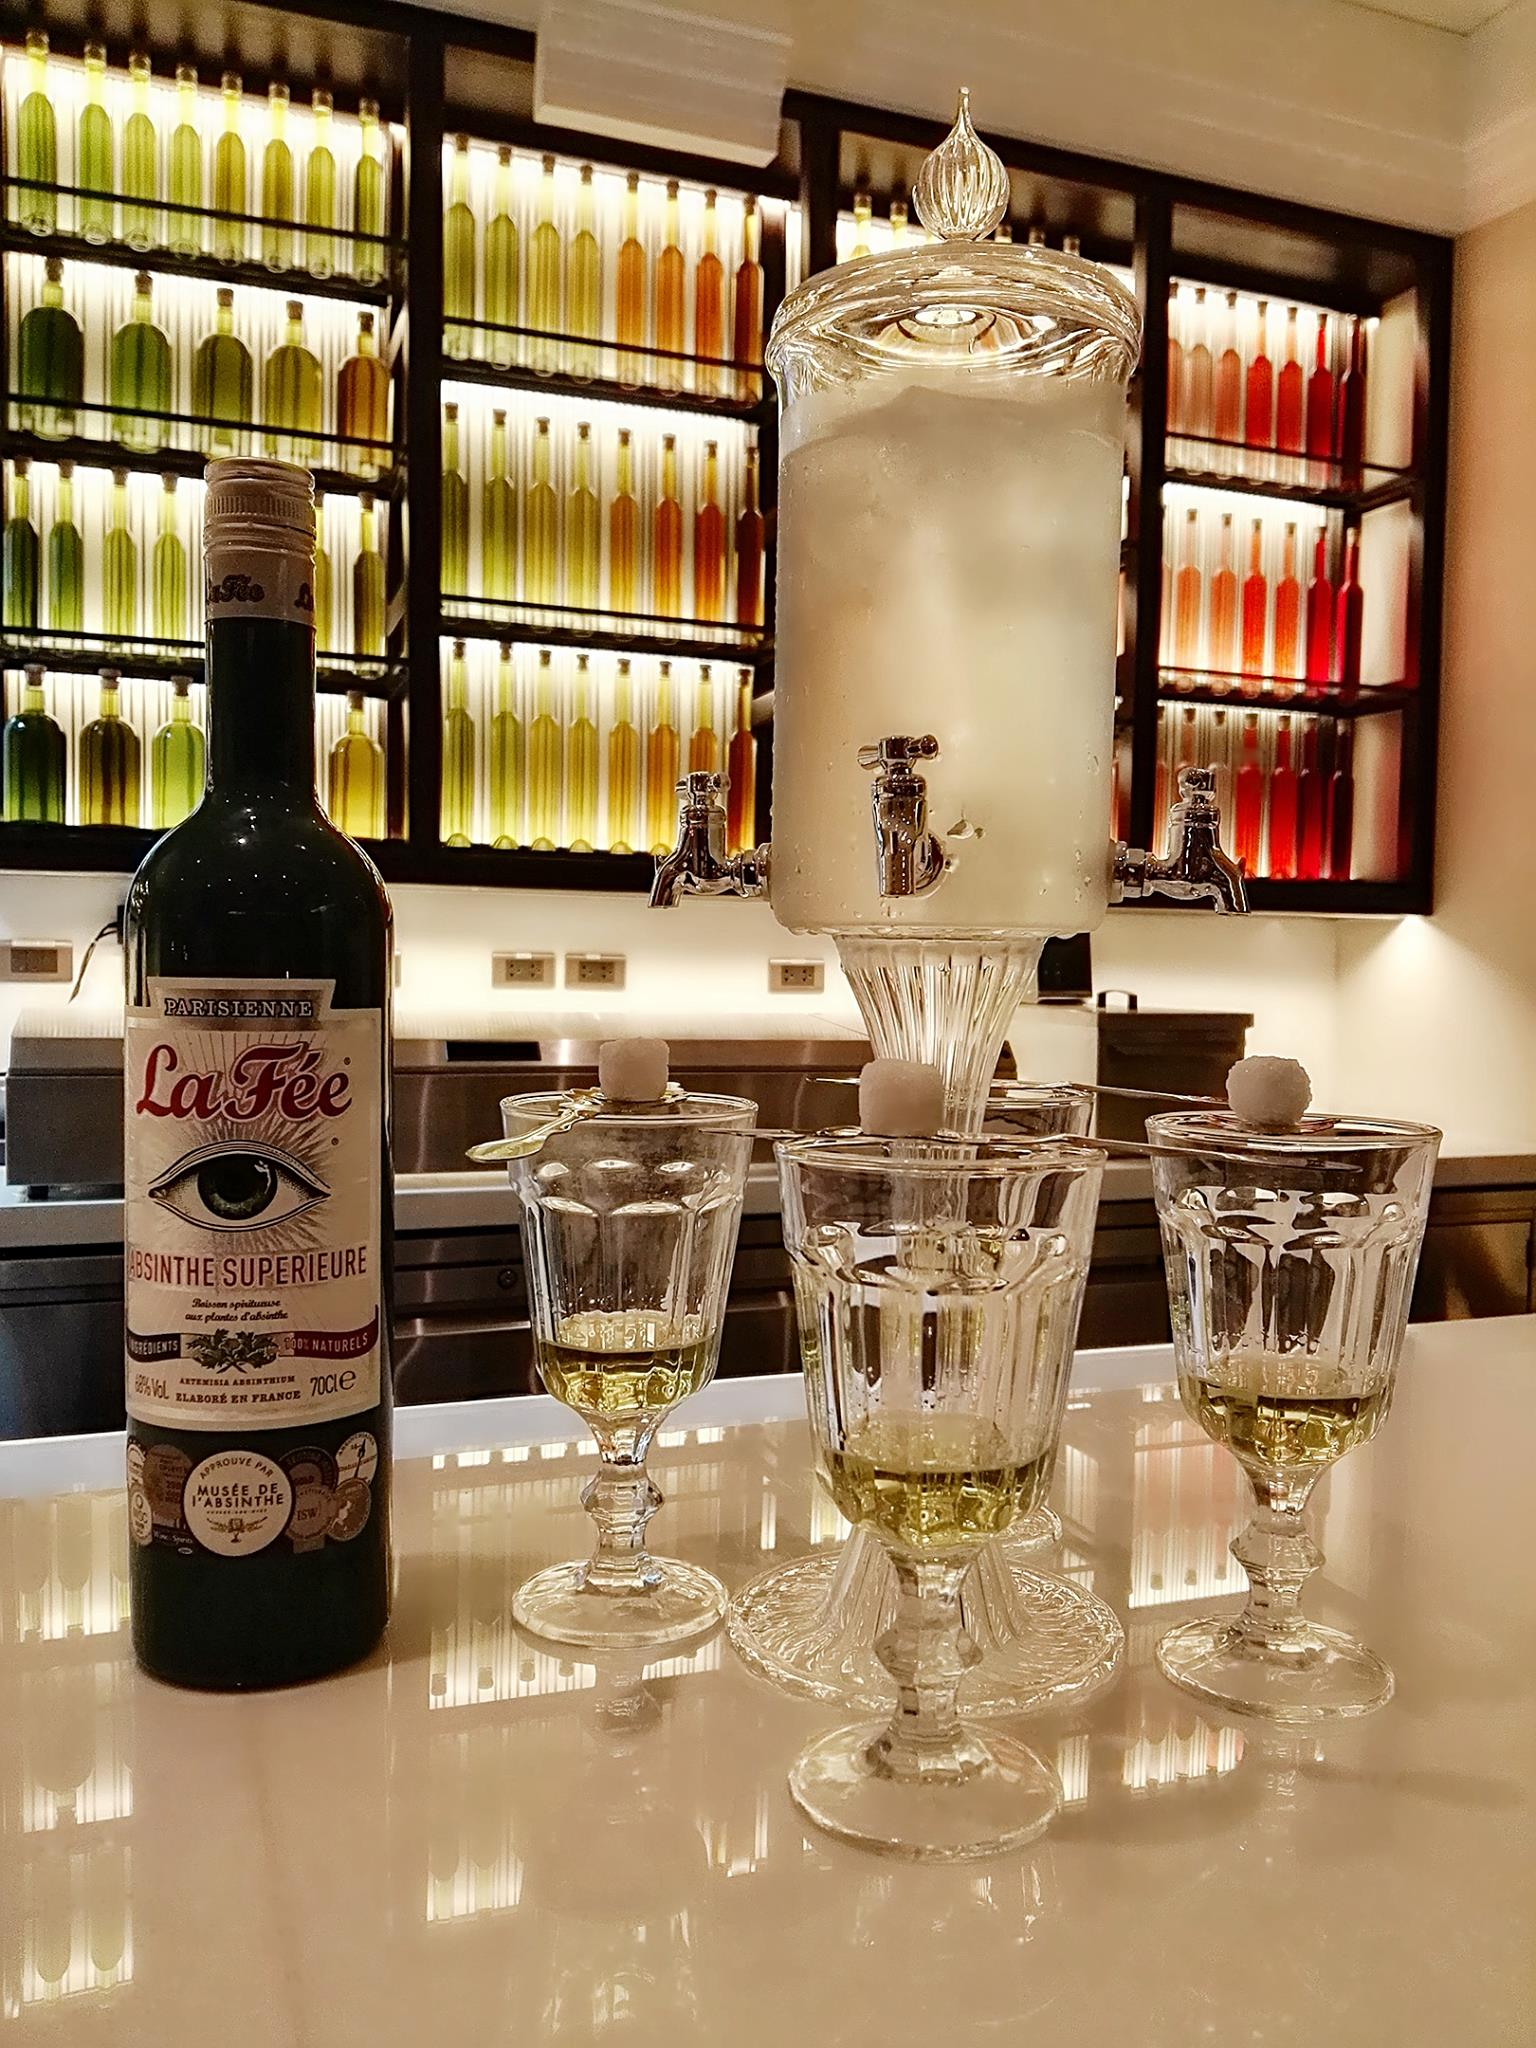 Their Absinthe is one of their more recommended drinks at Mireio; they serve it traditionally as in a fountain, and can be had both at the restaurant and at the rooftop terrace